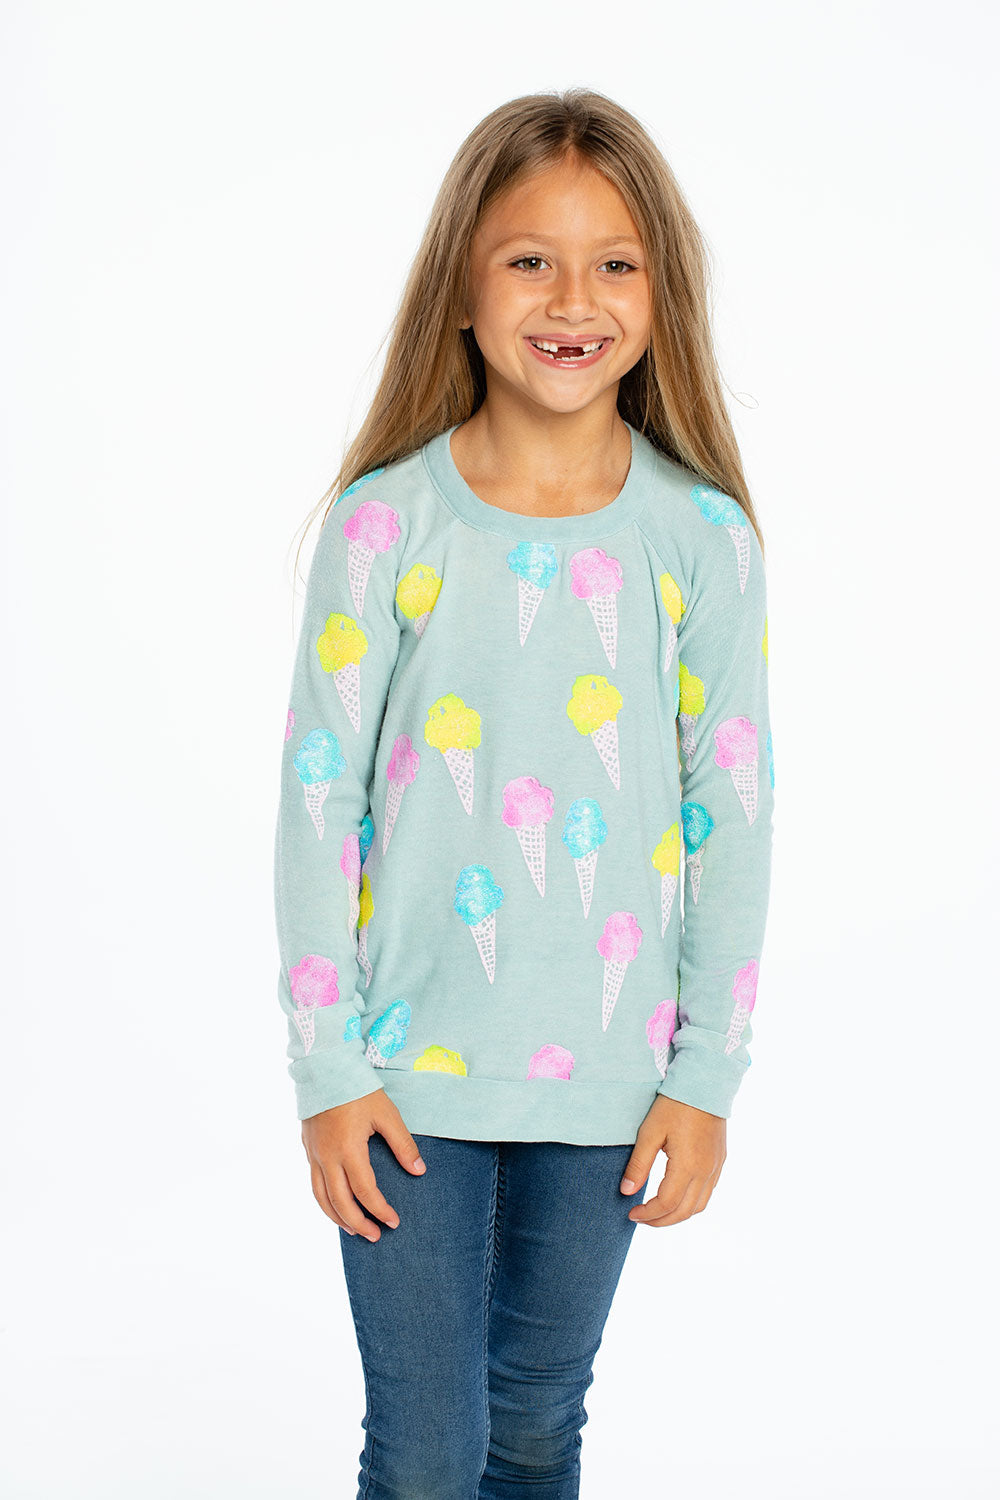 Neon Ice Creams GIRLS chaserbrand4.myshopify.com